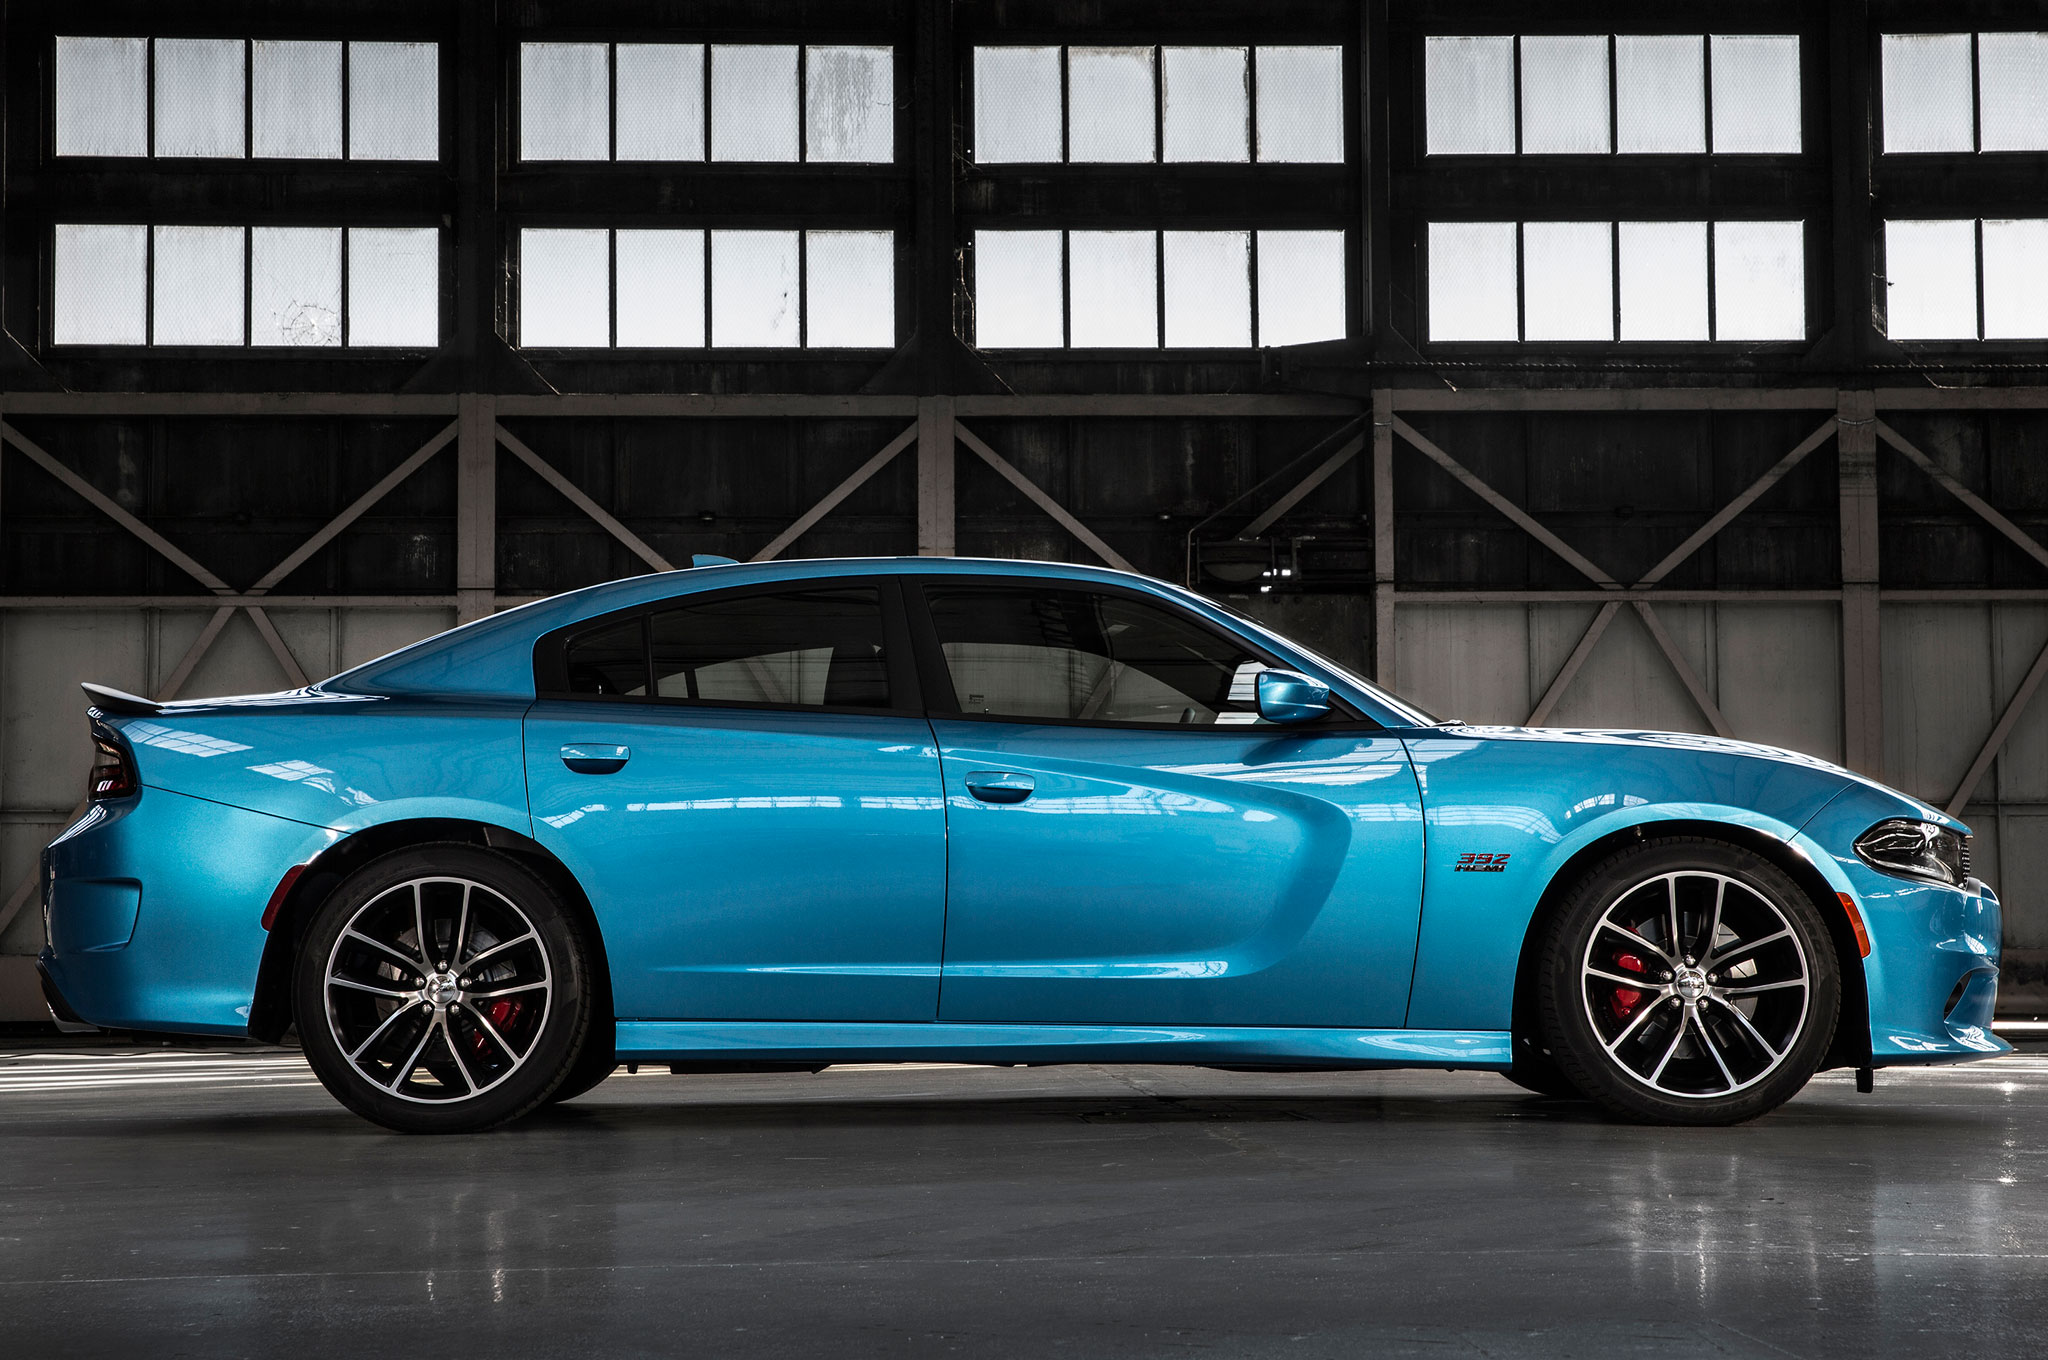 Rt 33 Nissan >> Flavors of Fast: 2015 Dodge Charger Hellcat vs. 2016 Nissan GT-R